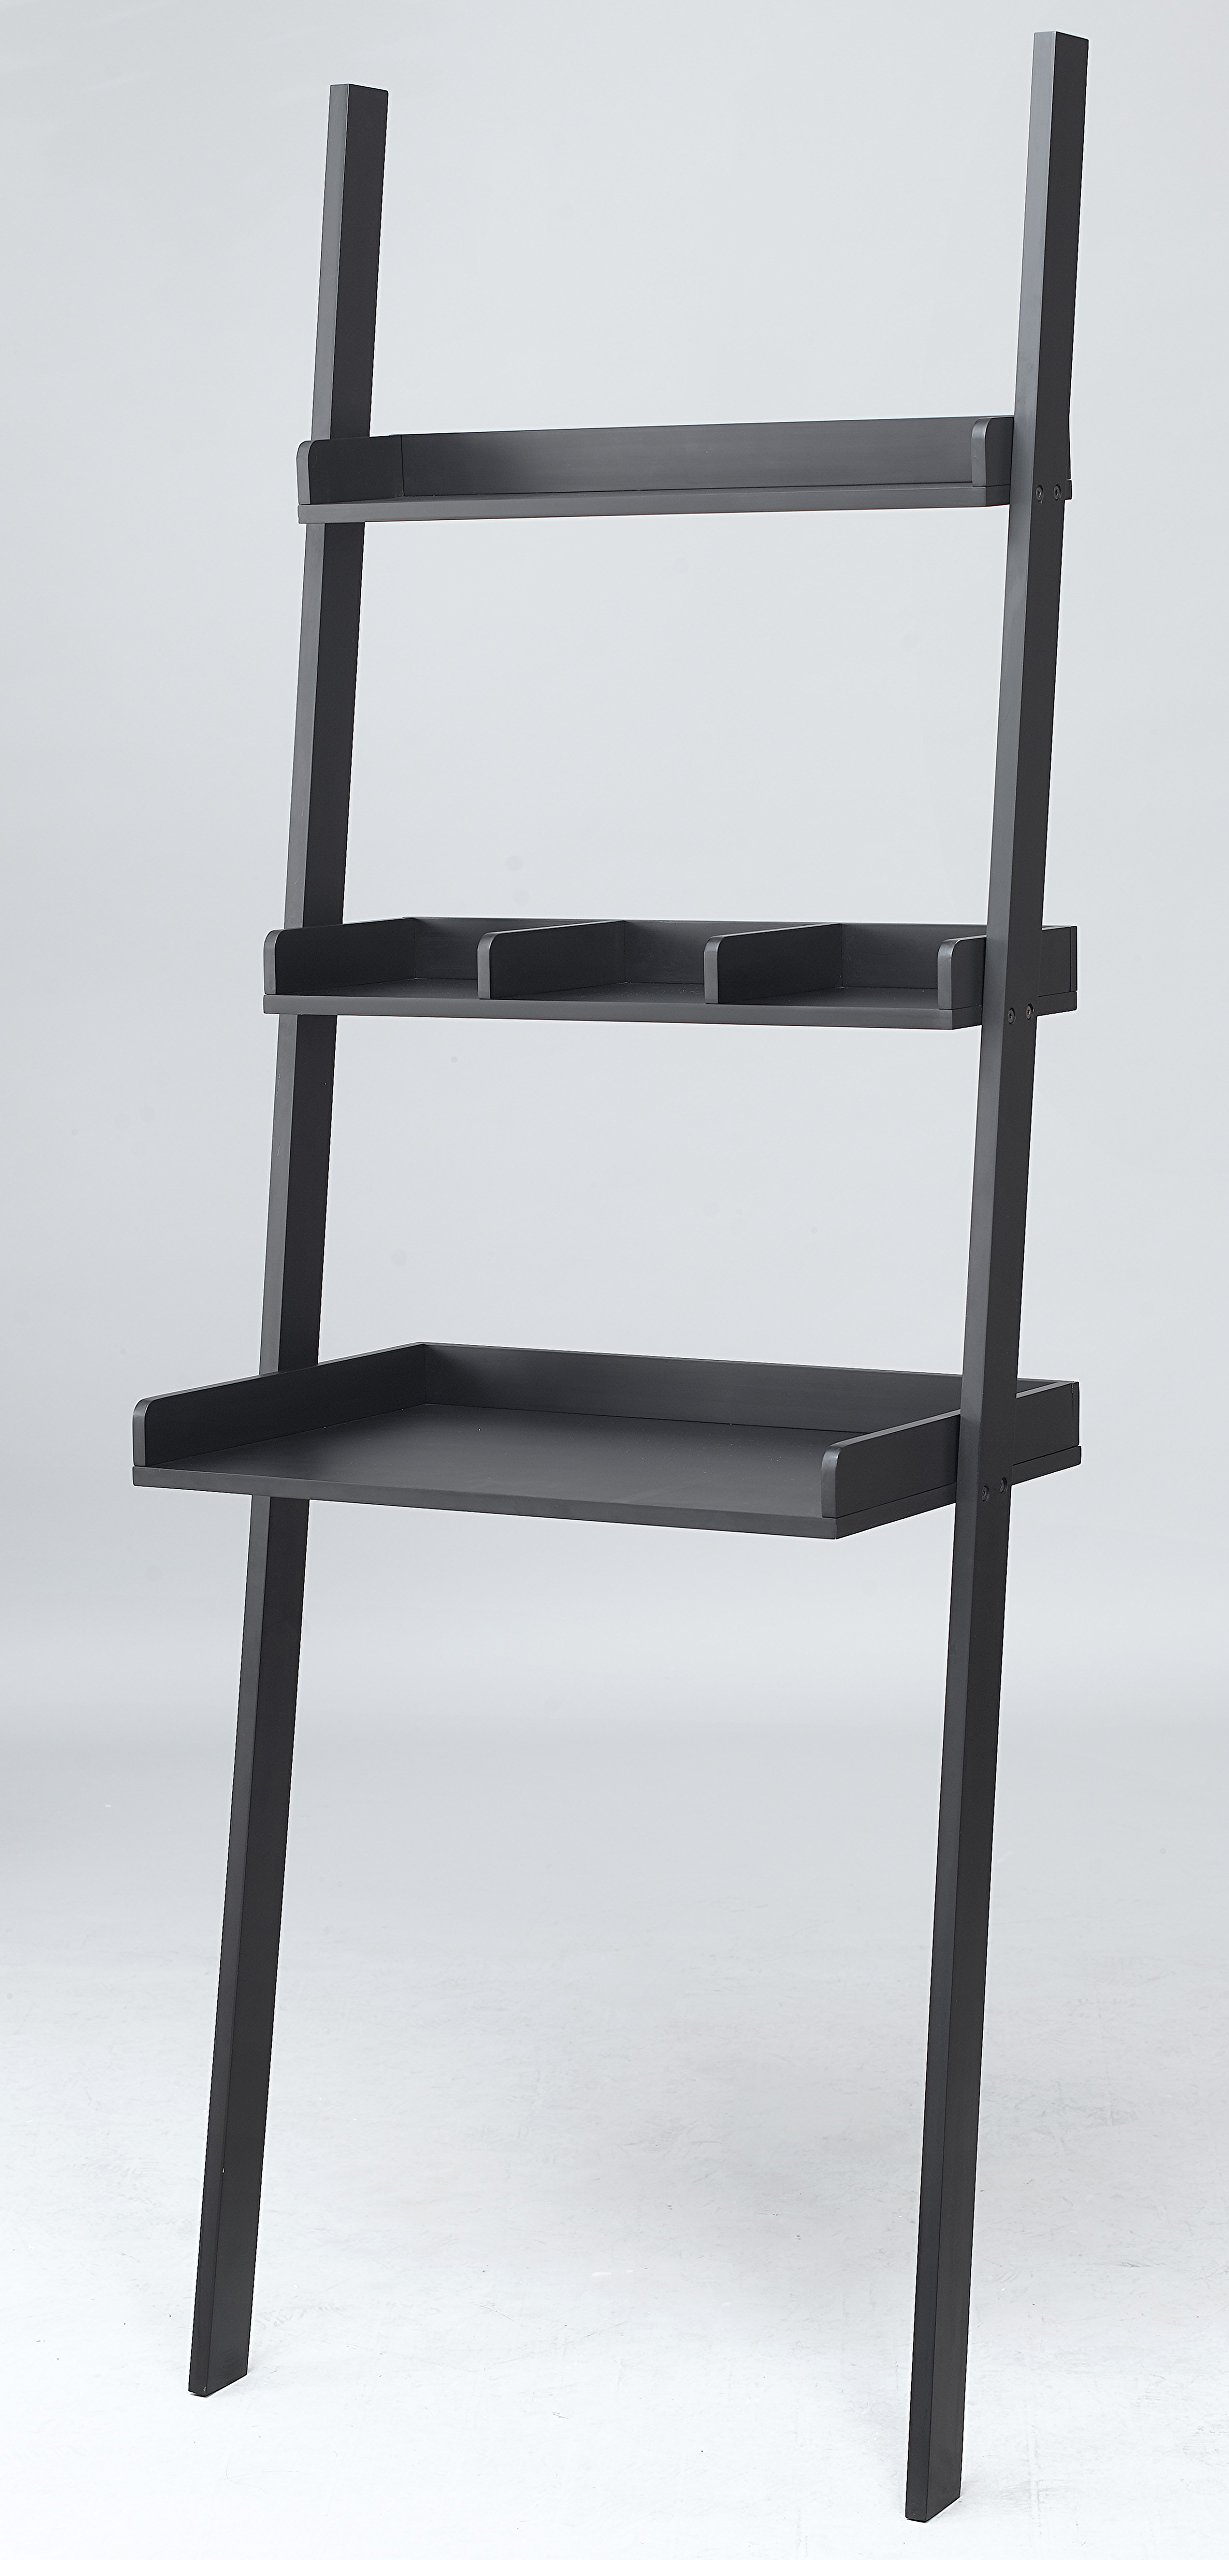 FDW 3 Tiered Ladder Shelving Display Stand, Bookshelf Storage Rack